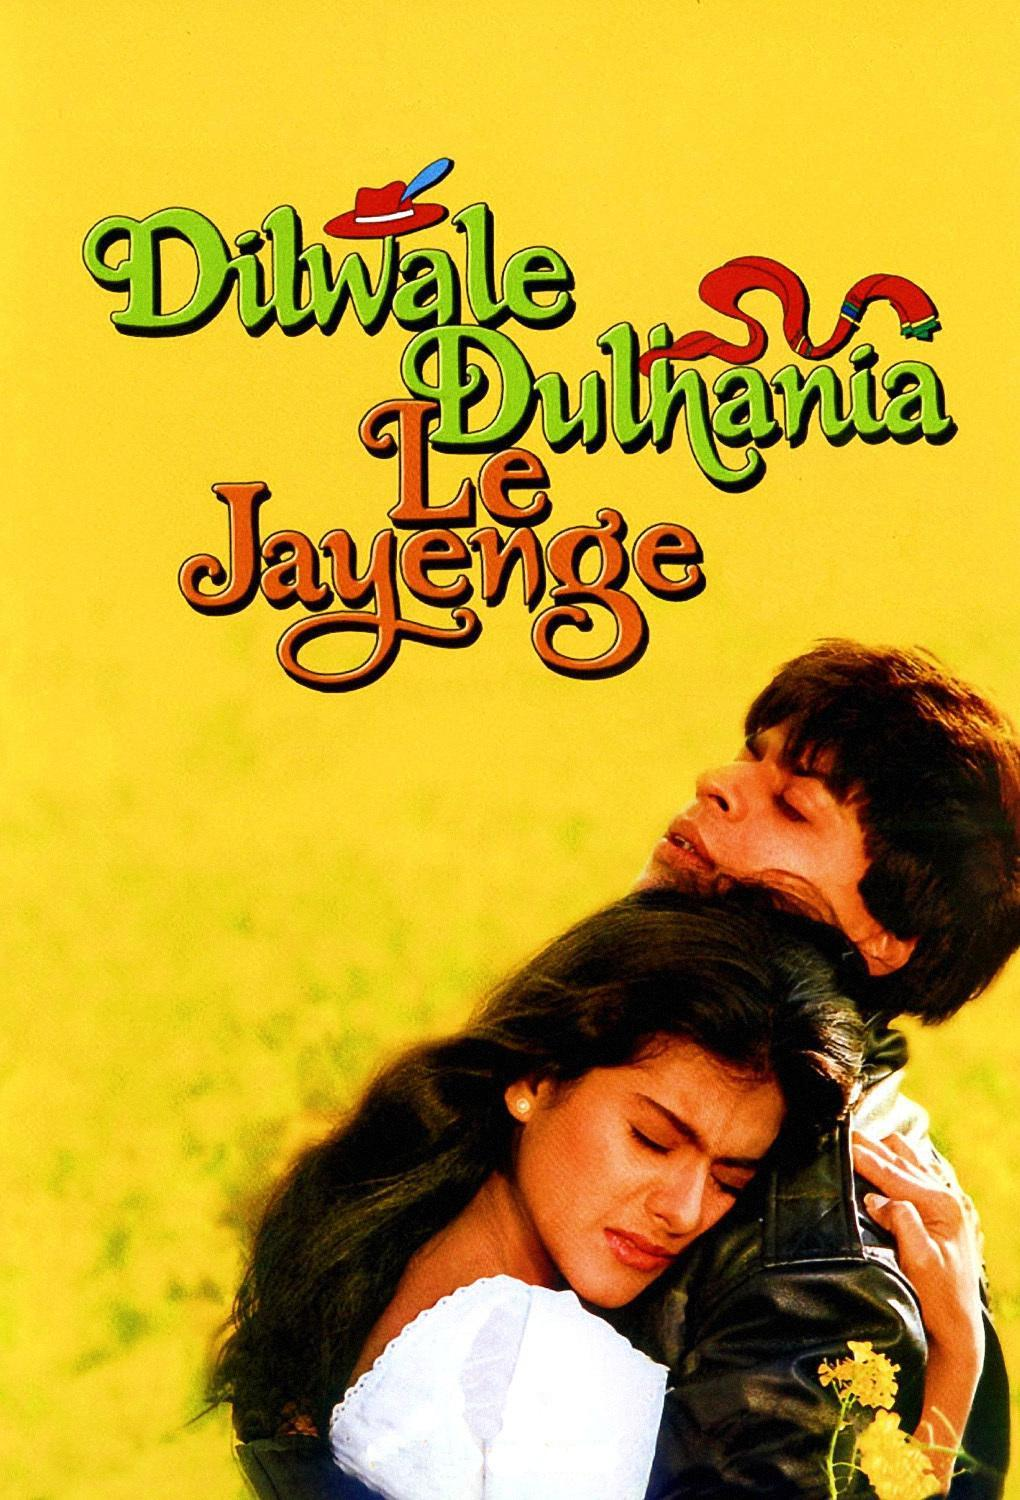 bollywood love story movies dilwale-dulhania-le-jayenge